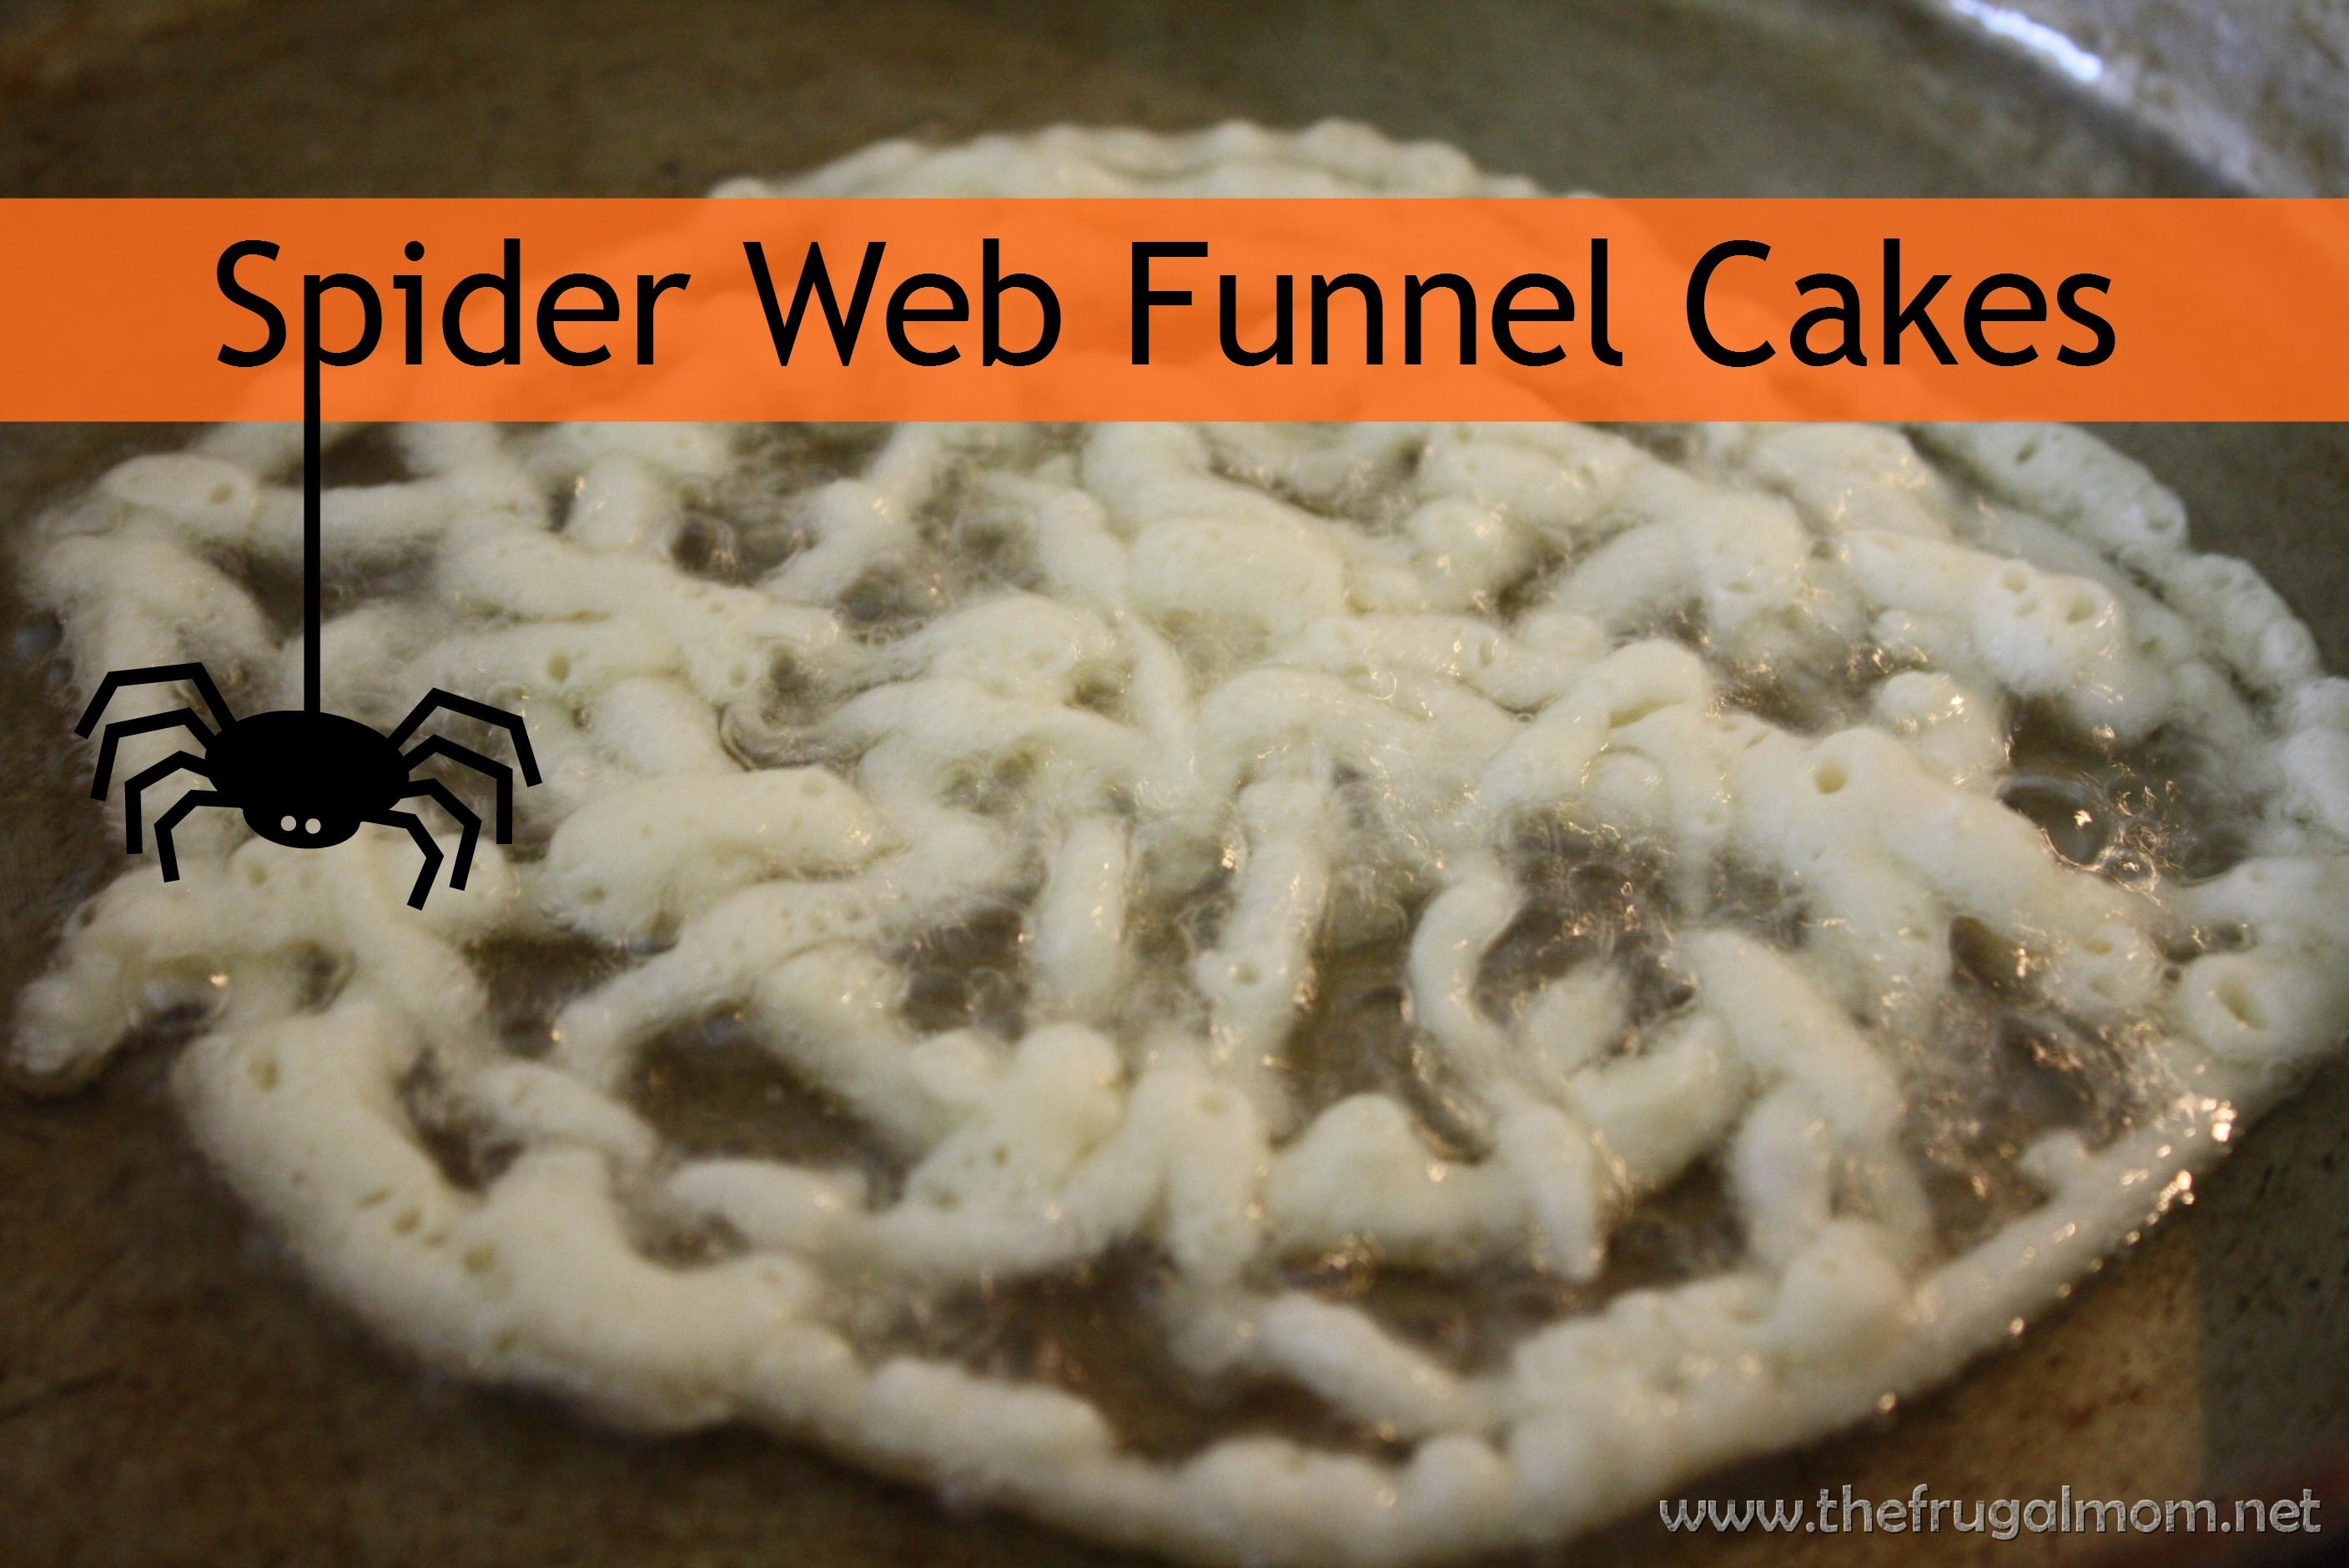 Enjoy This Easy and Delicious Funnel Cake Recipe